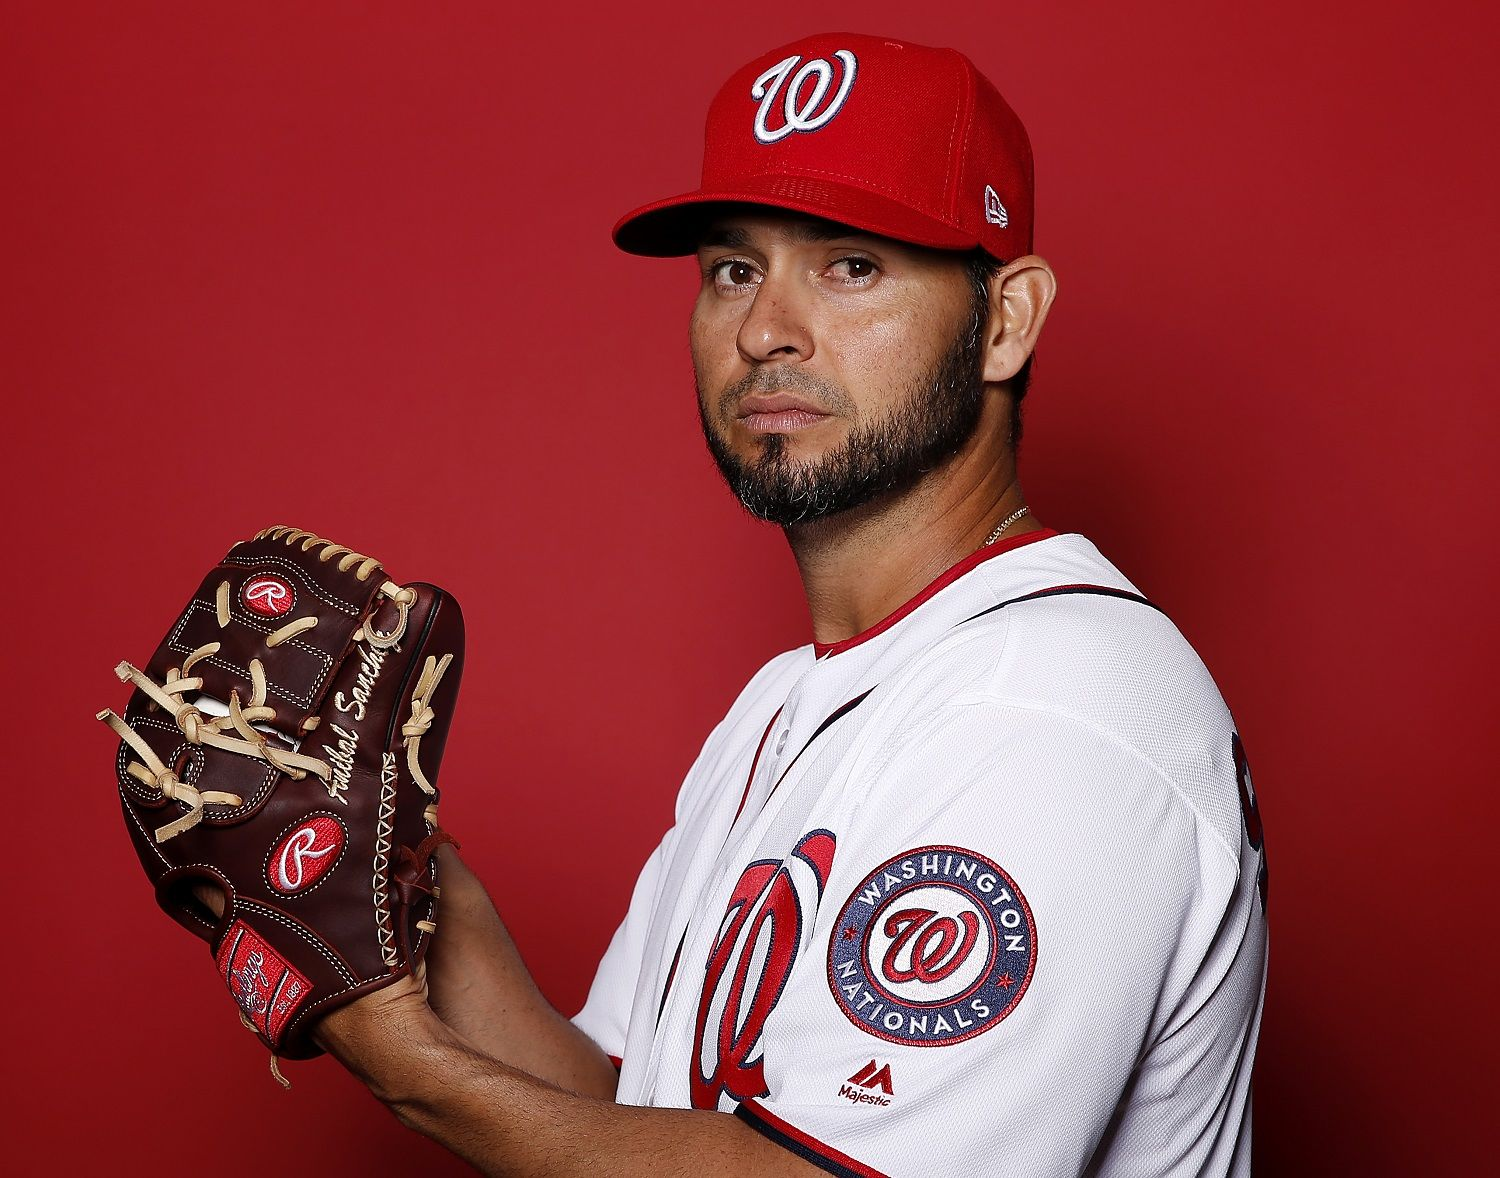 WEST PALM BEACH, FLORIDA - FEBRUARY 22:  Anibal Sanchez #19 of the Washington Nationals poses for a portrait on Photo Day at FITTEAM Ballpark of The Palm Beaches during on February 22, 2019 in West Palm Beach, Florida. (Photo by Michael Reaves/Getty Images)